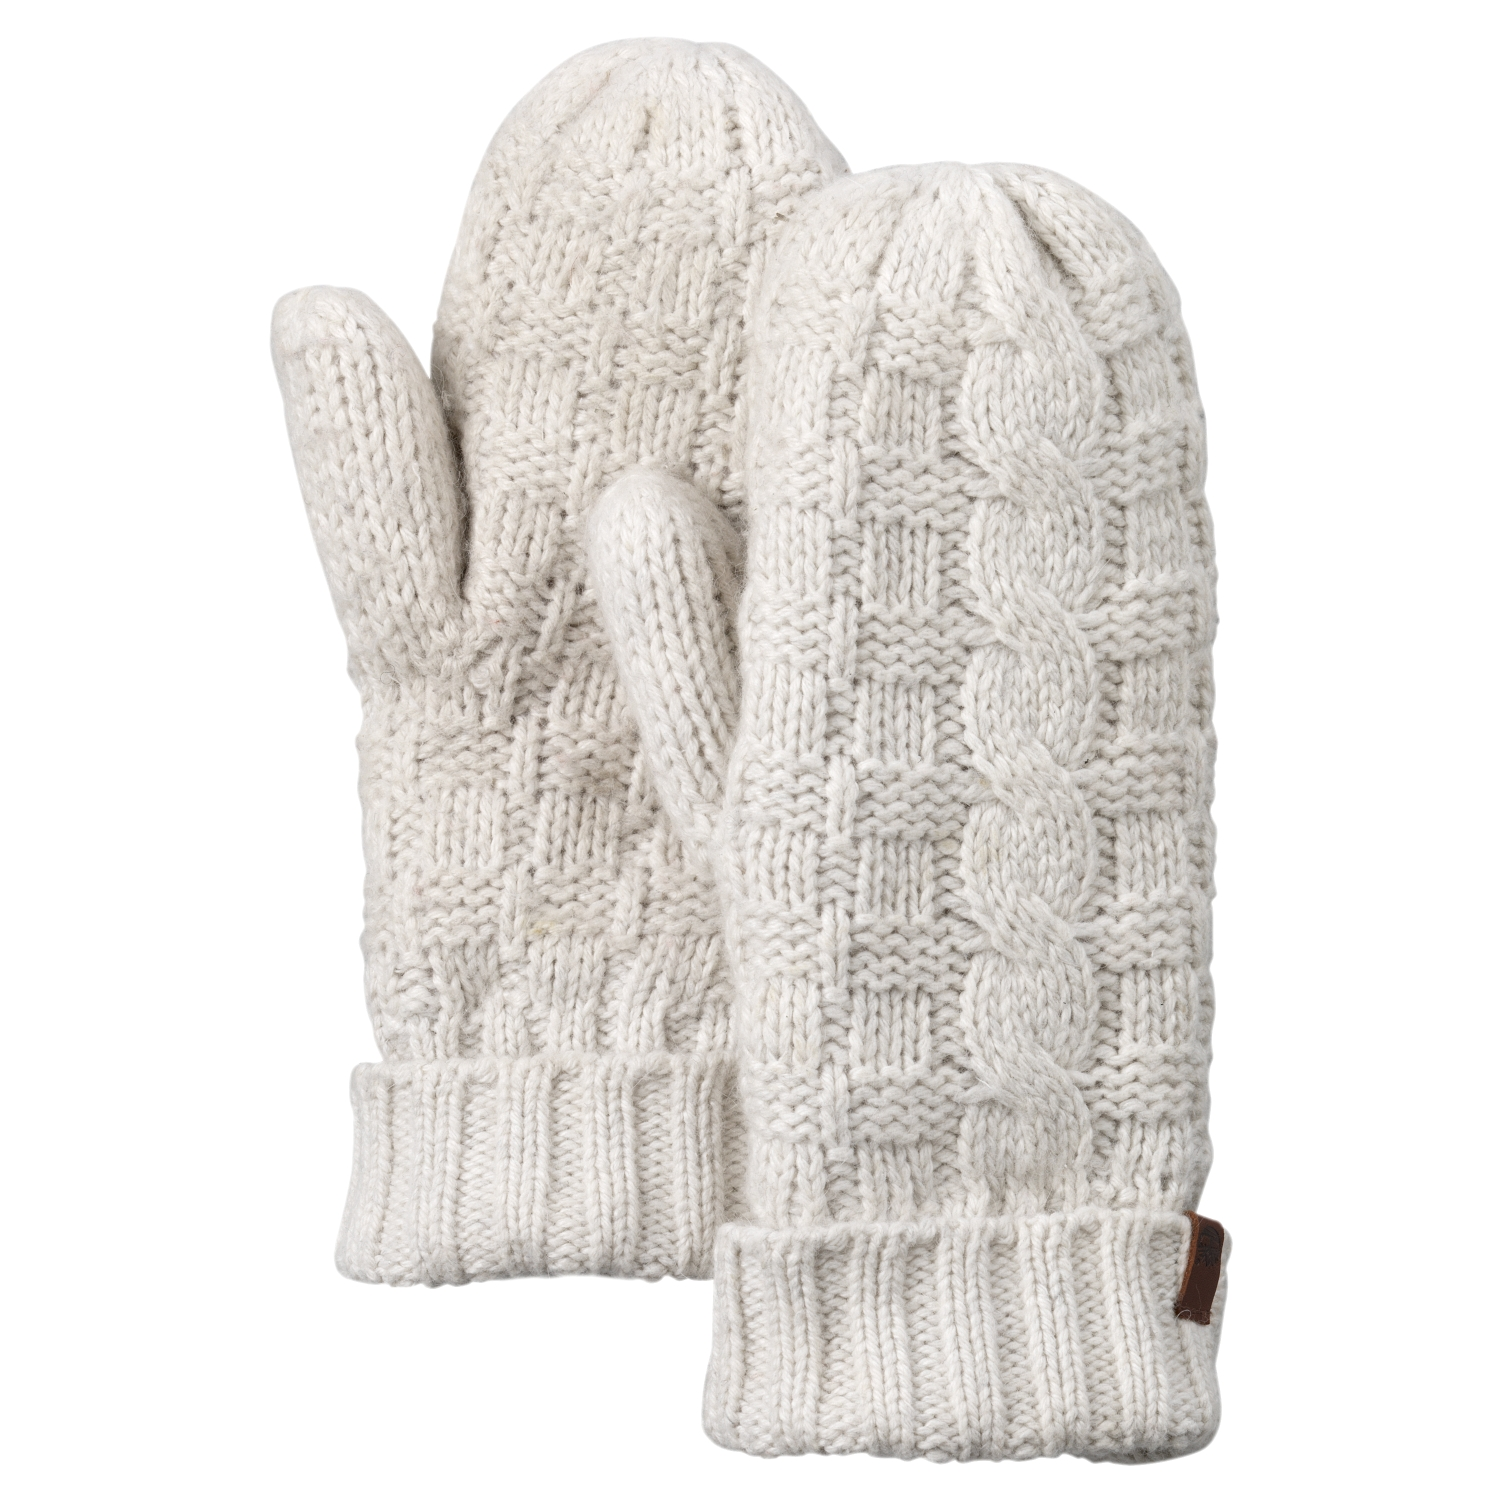 Enter to win these Timberland mittens and more!